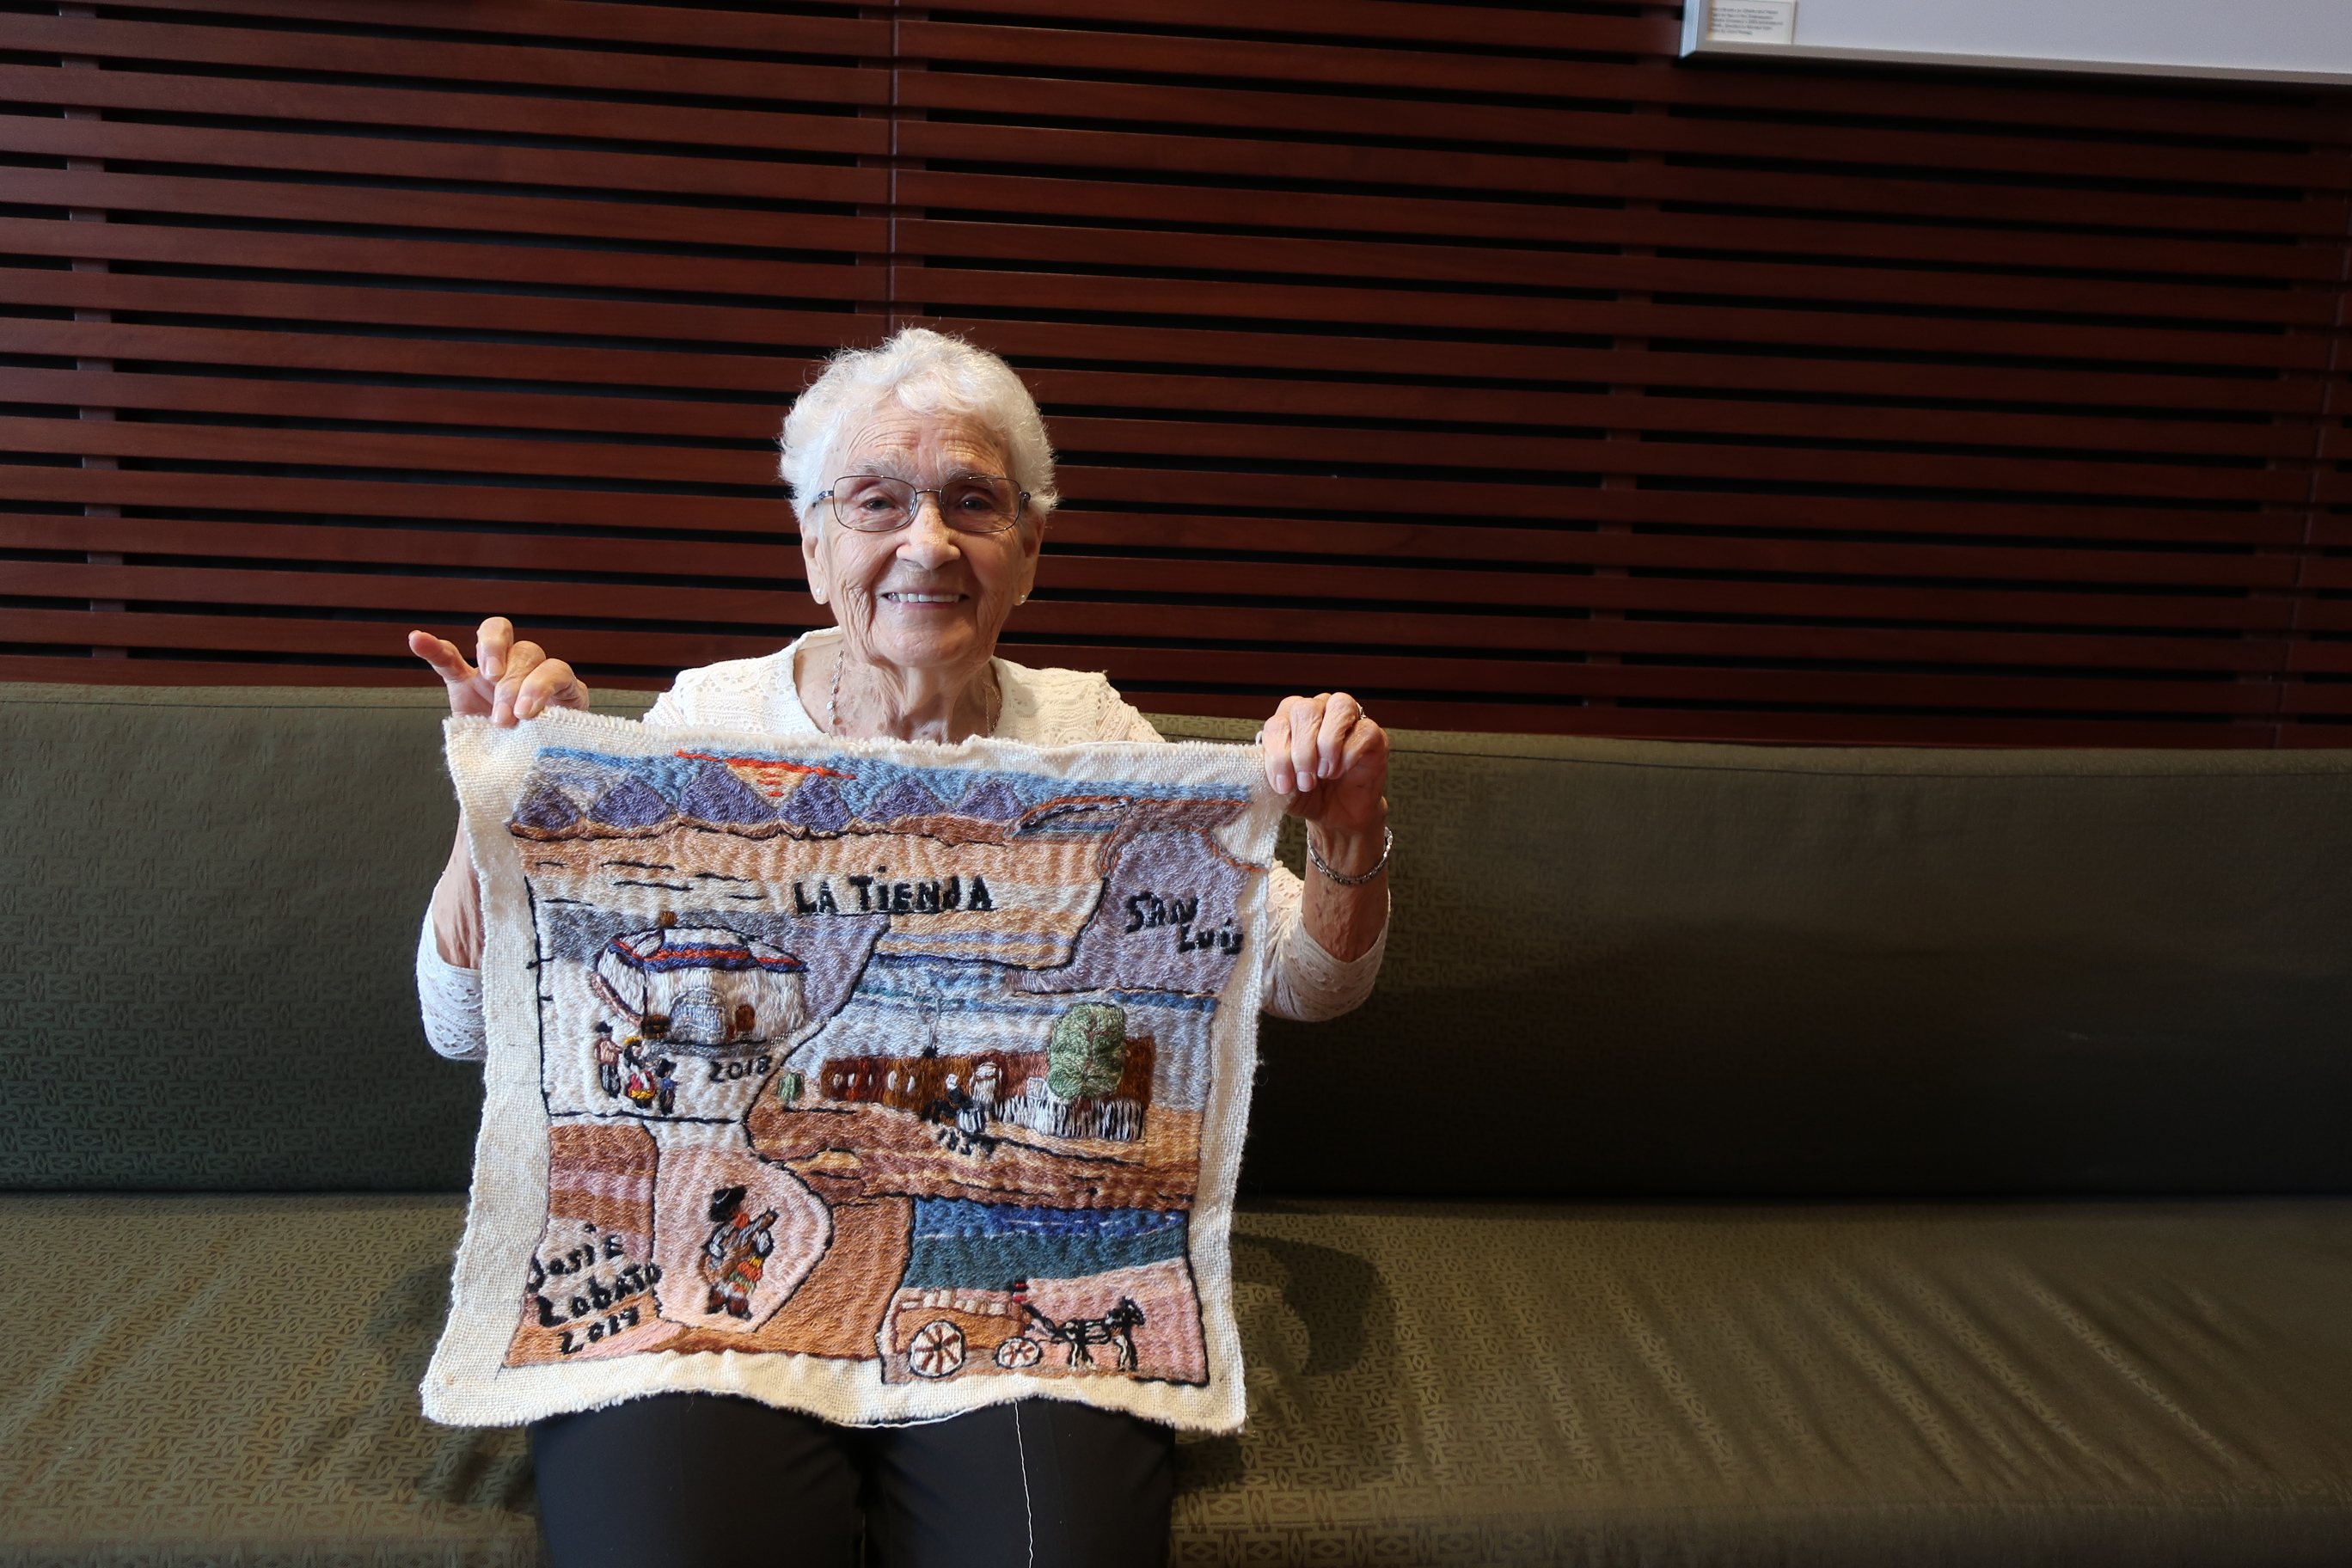 Colcha artist Josephine Lobato displays one of her works that led to an NEA National Heritage fellowship.